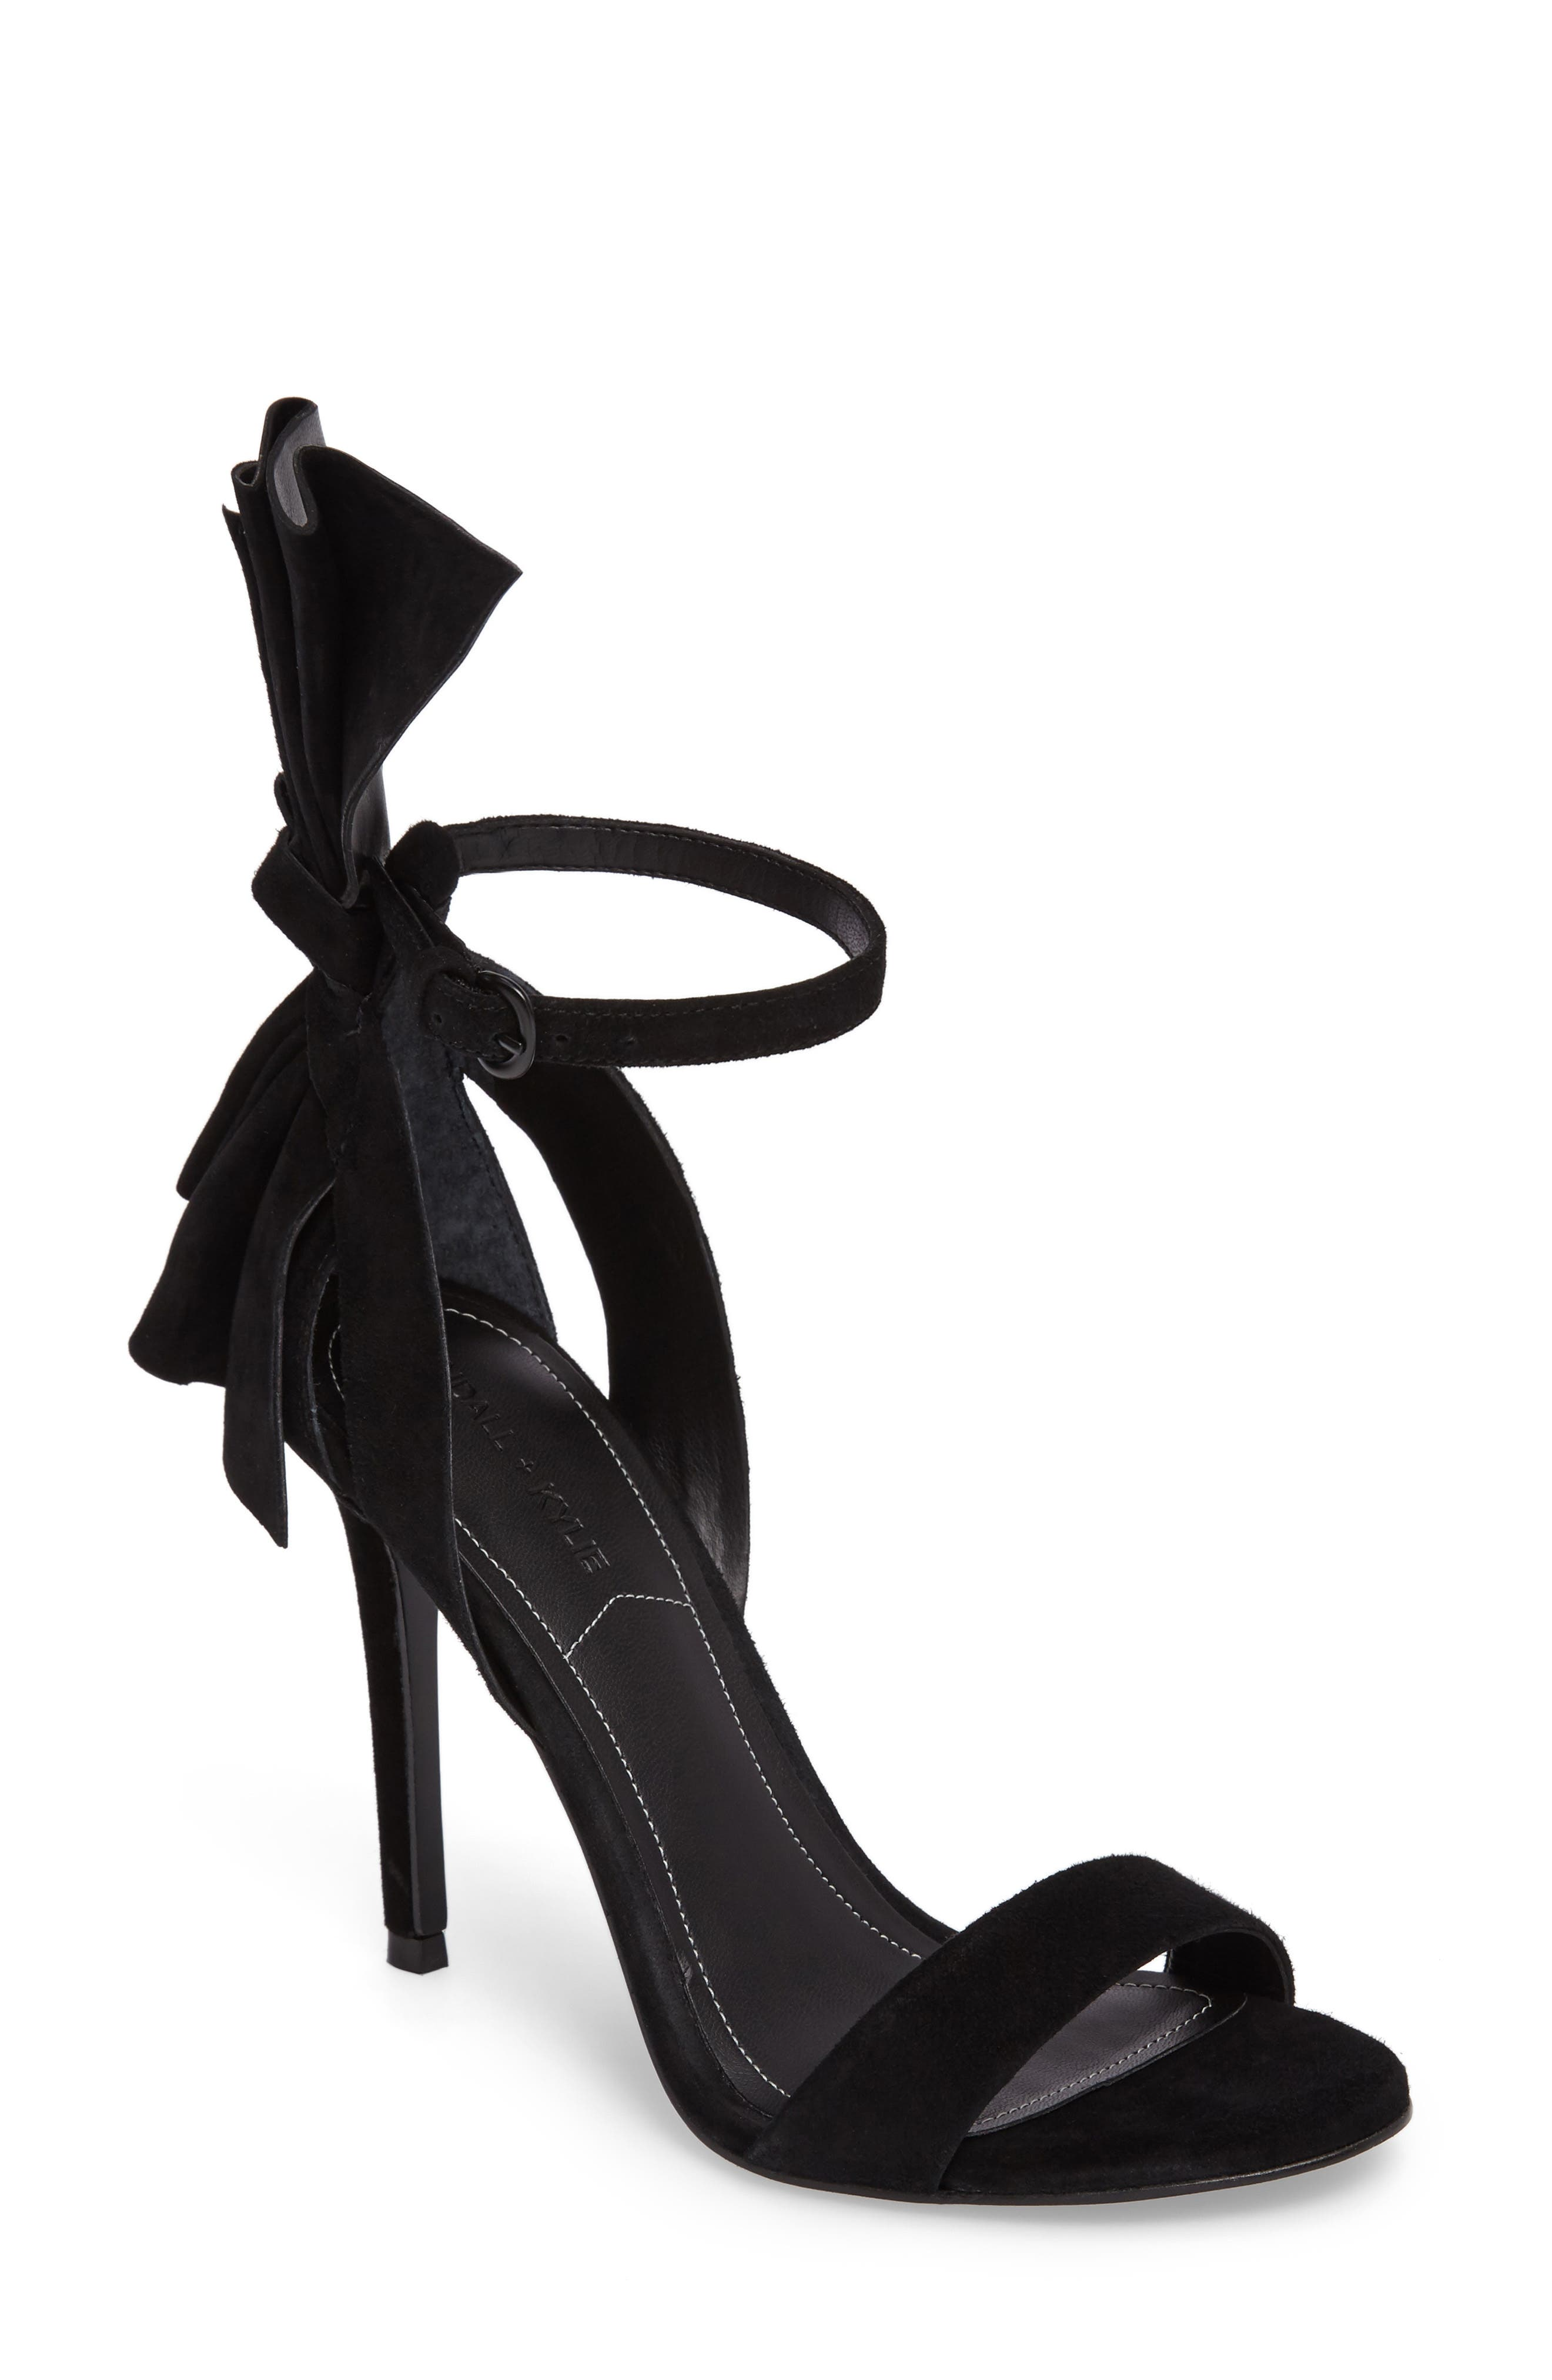 KENDALL + KYLIE Eve Ankle Strap Sandal (Women)